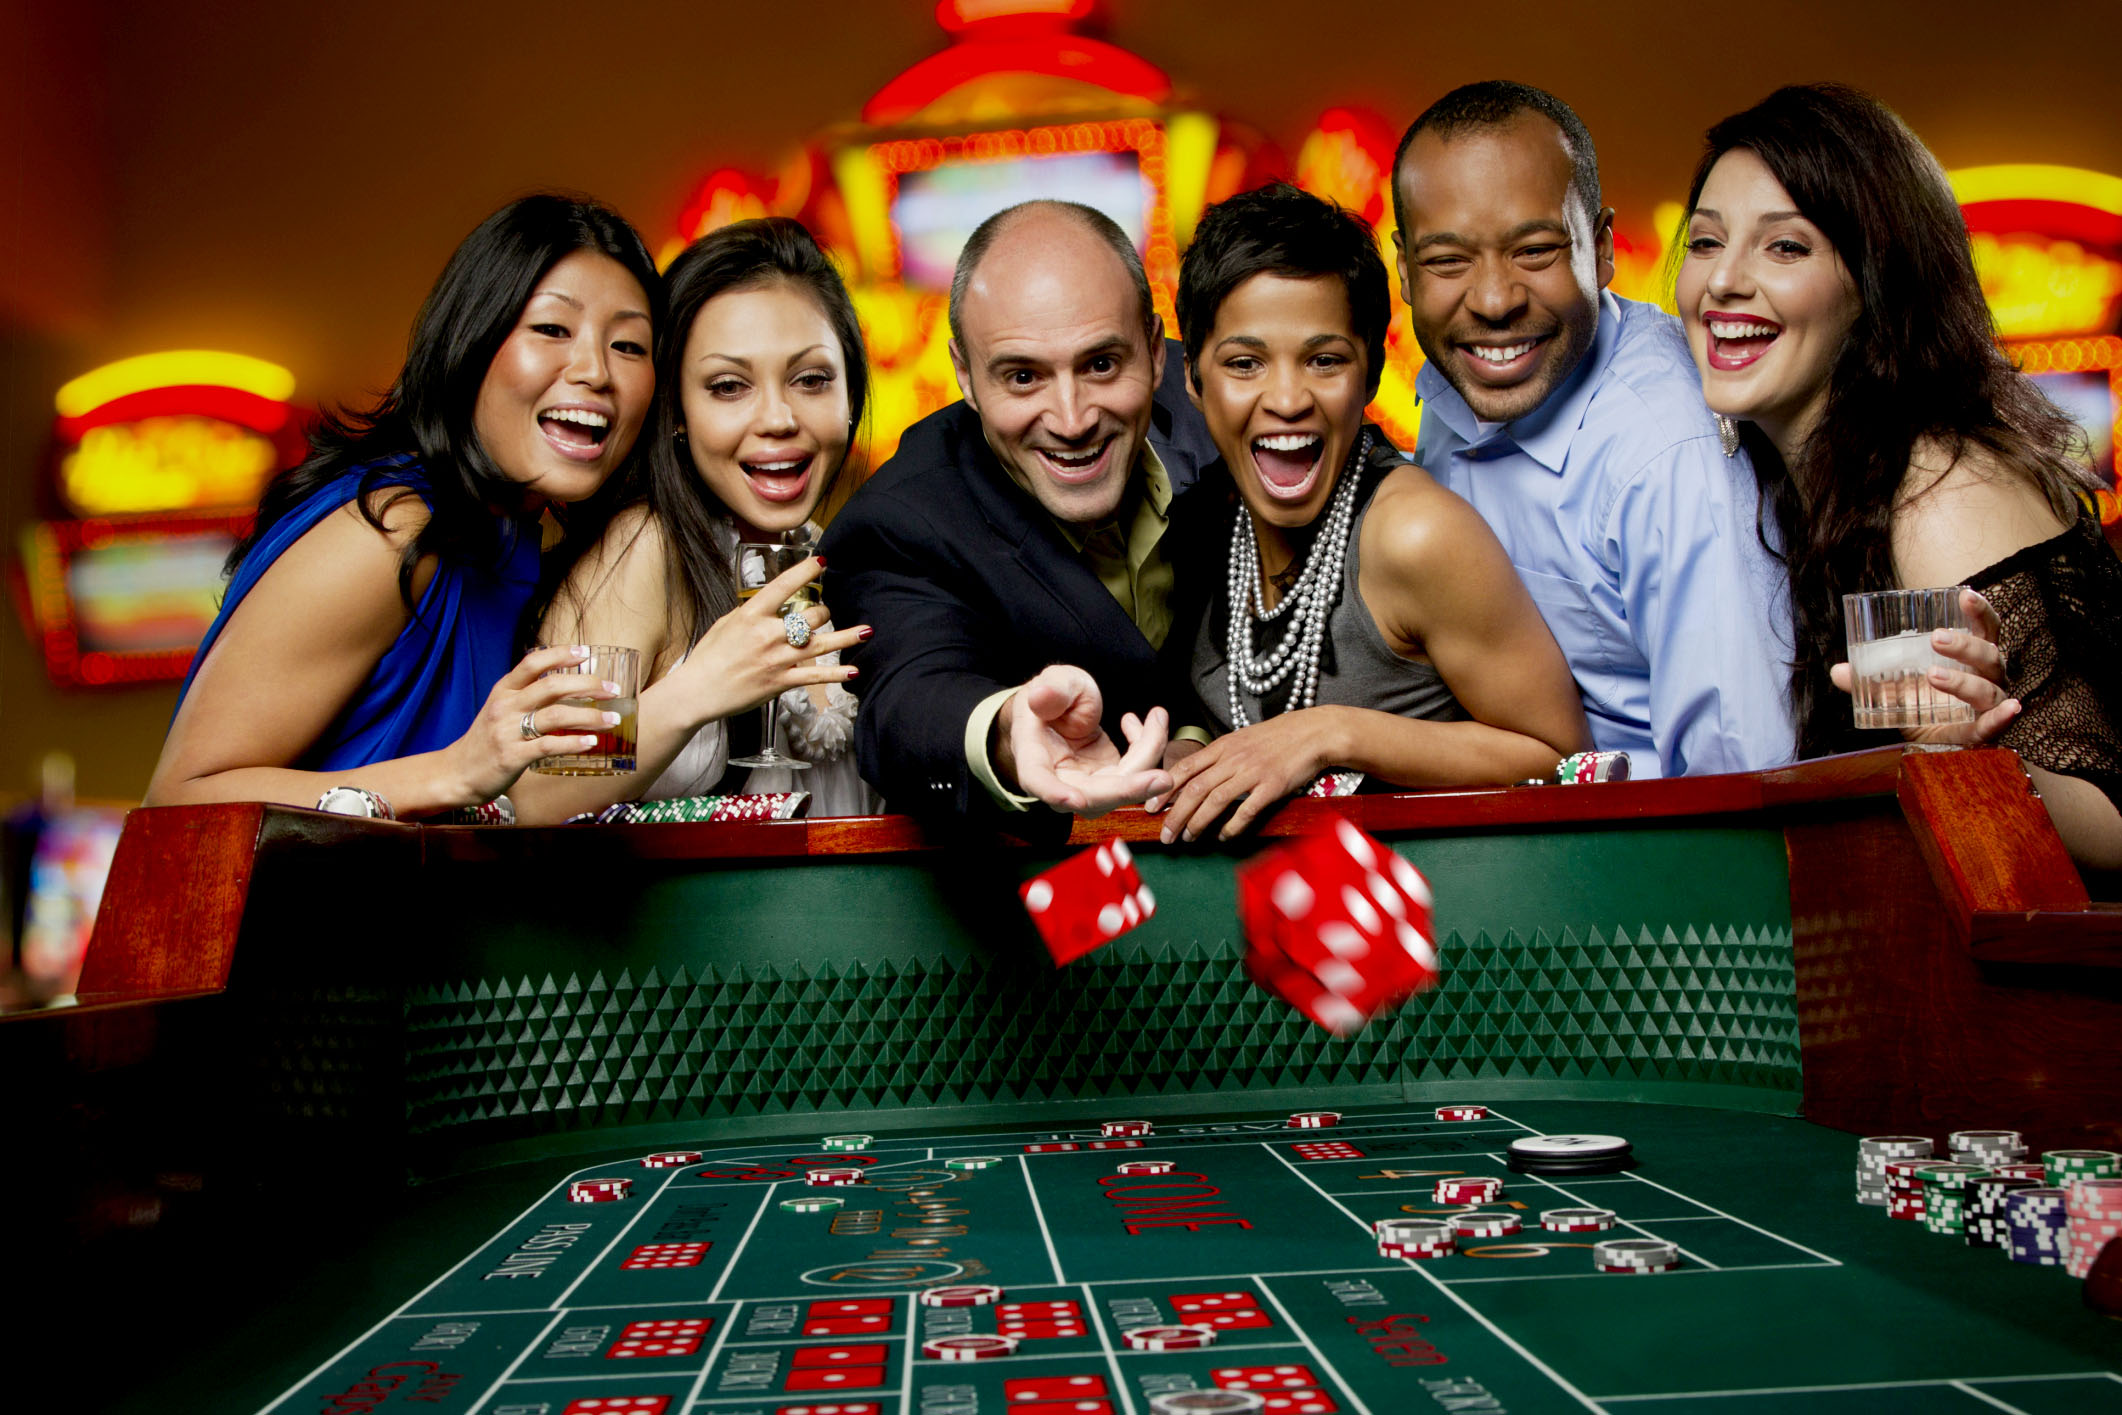 Tips On How To Lose Gambling